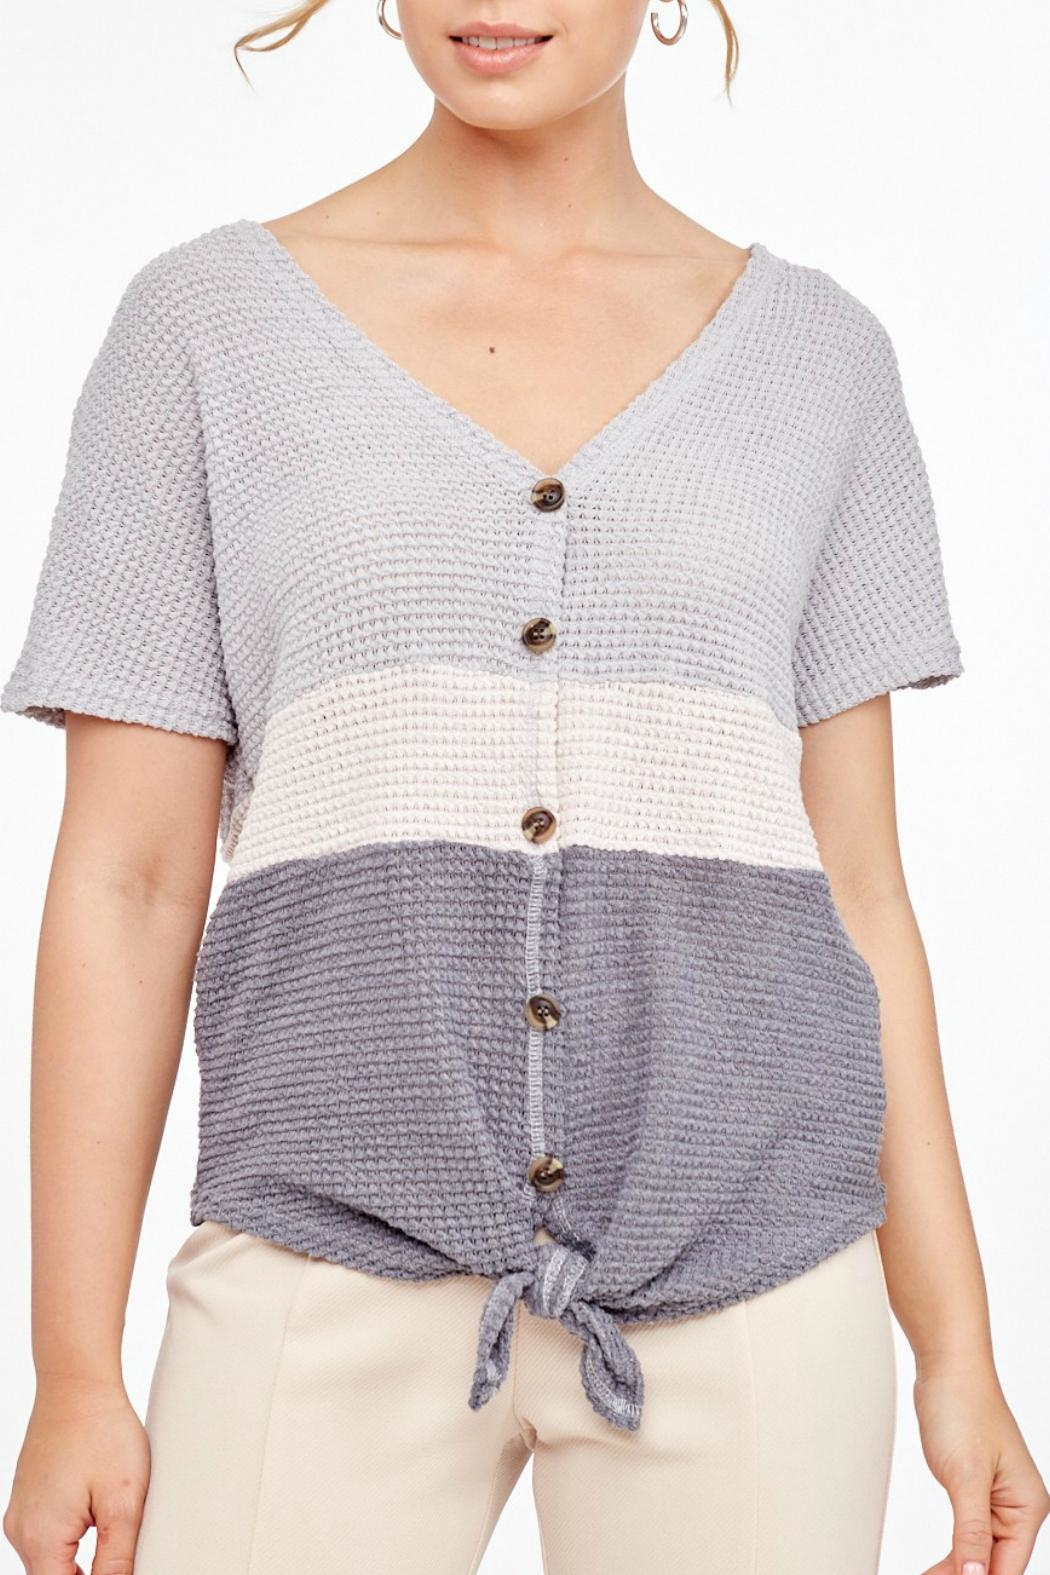 L Love Shortsleeve Knitted Top - Main Image